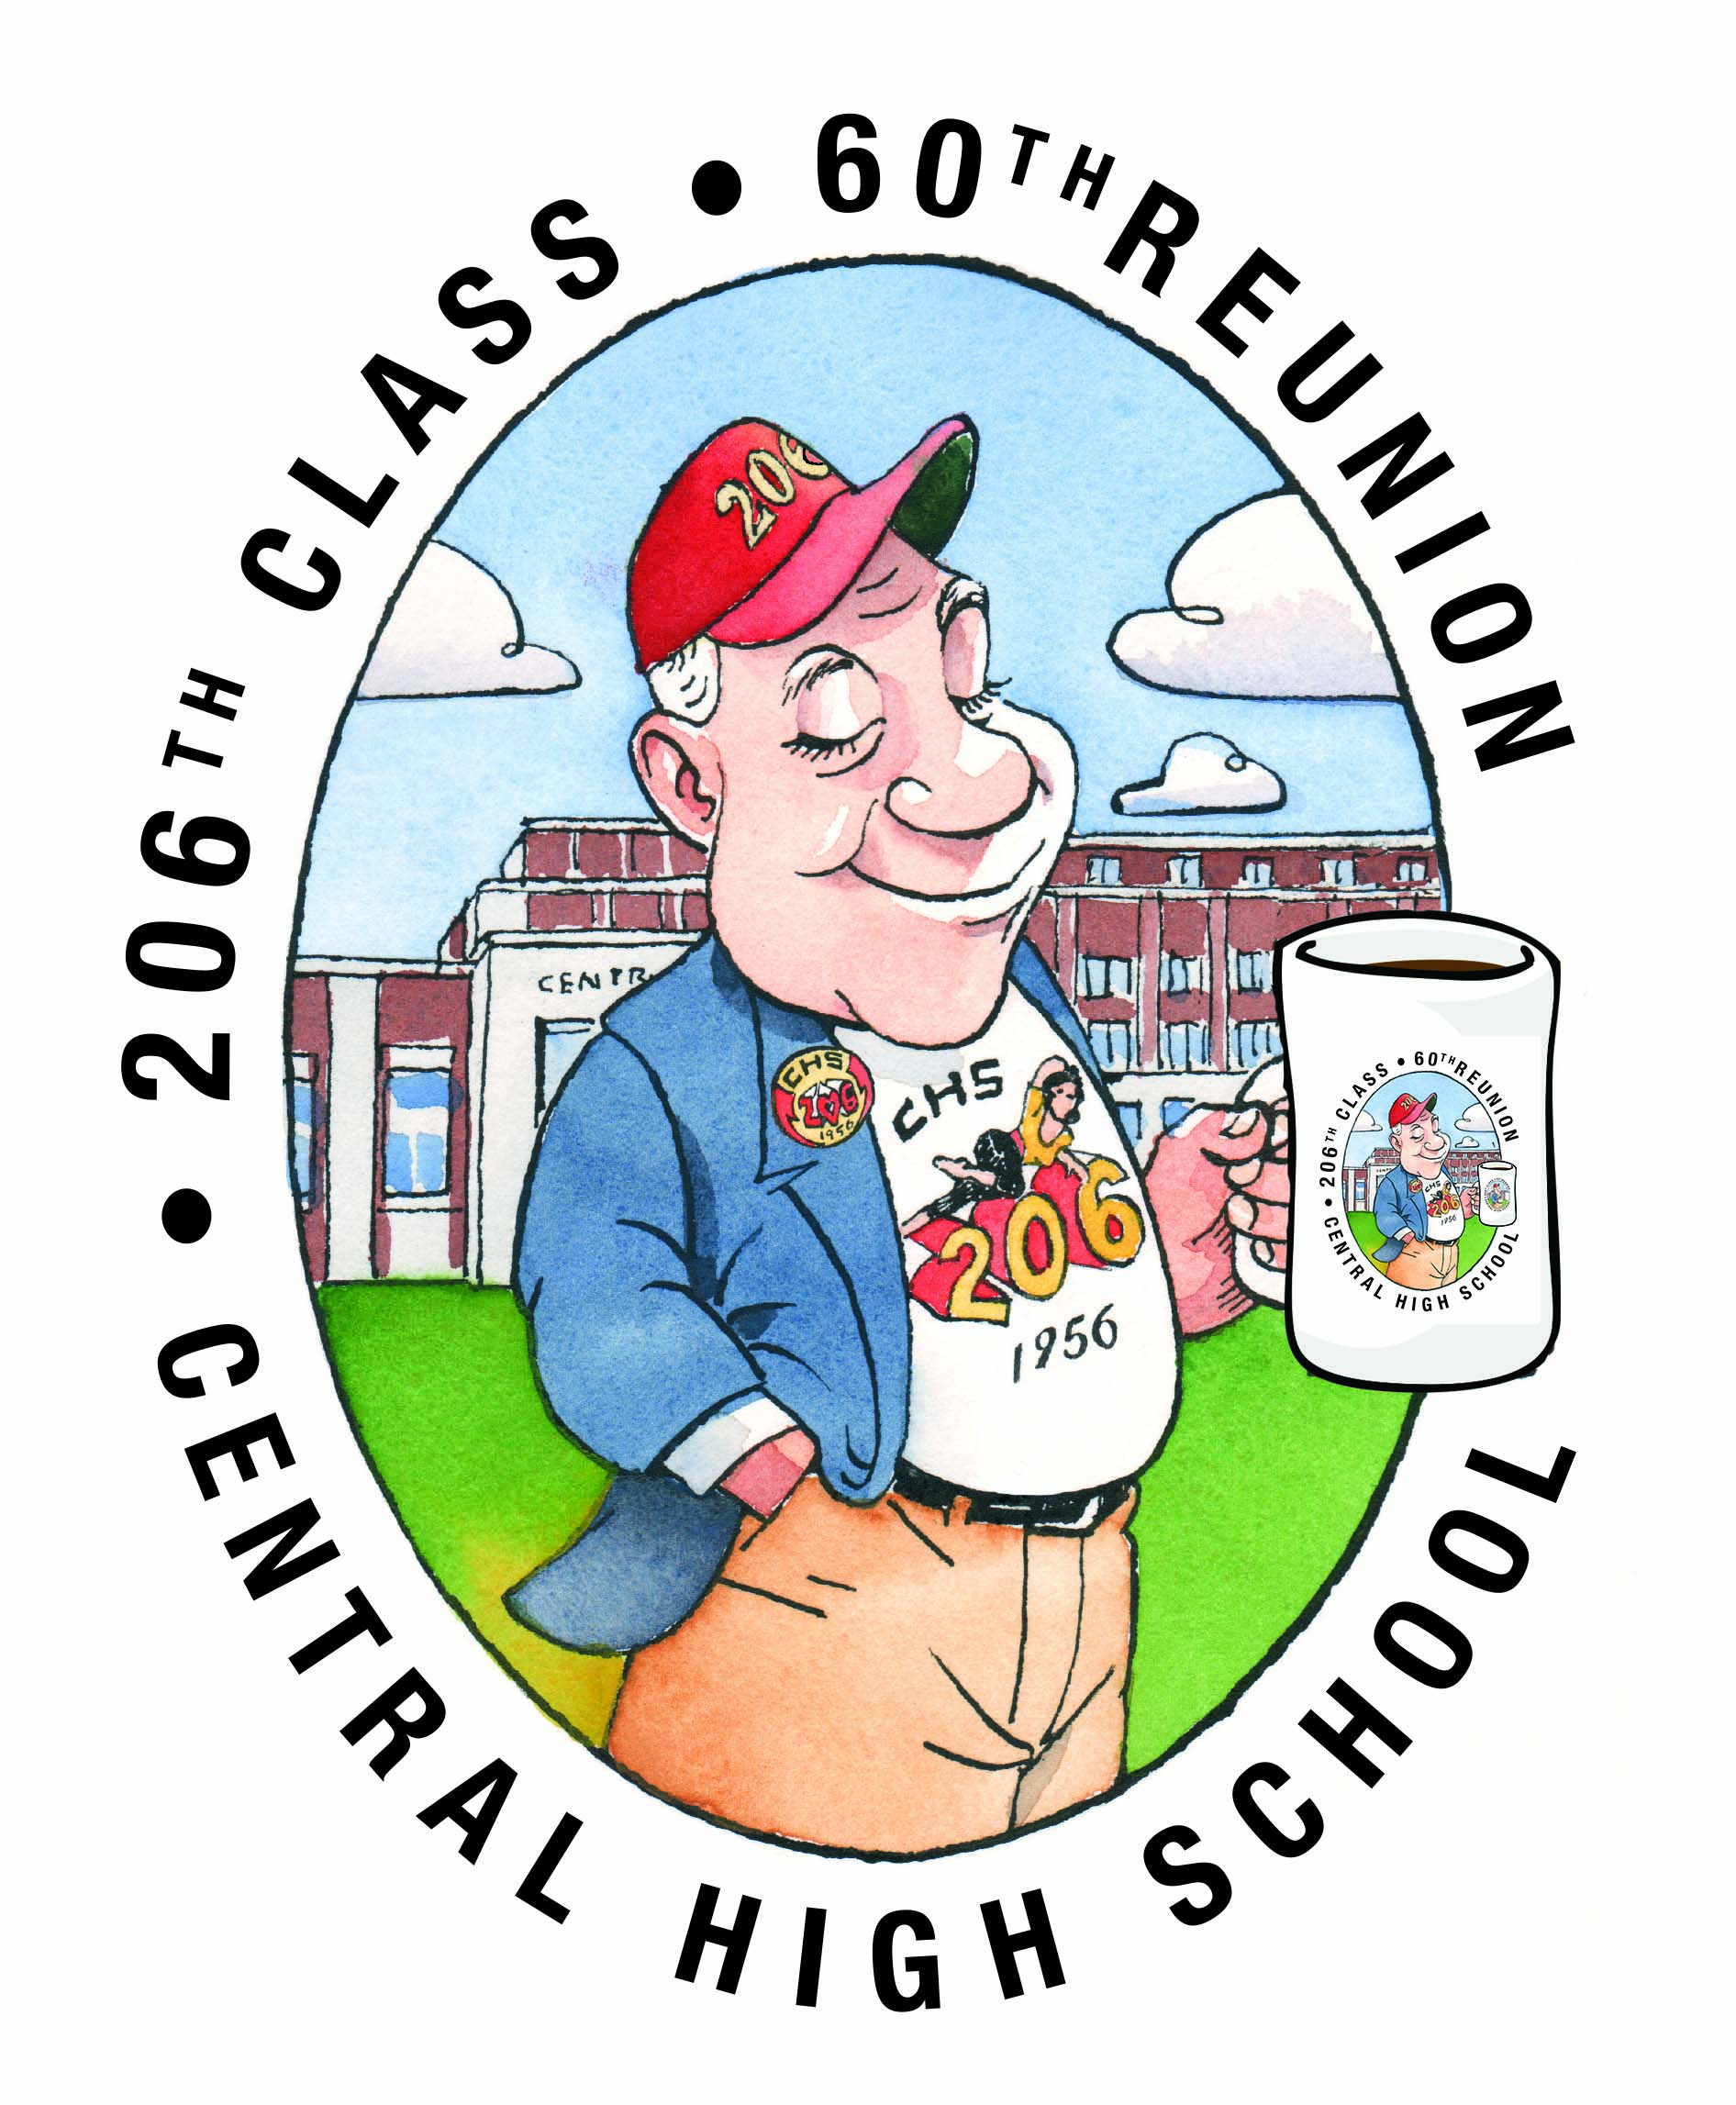 60th Reunion Logo